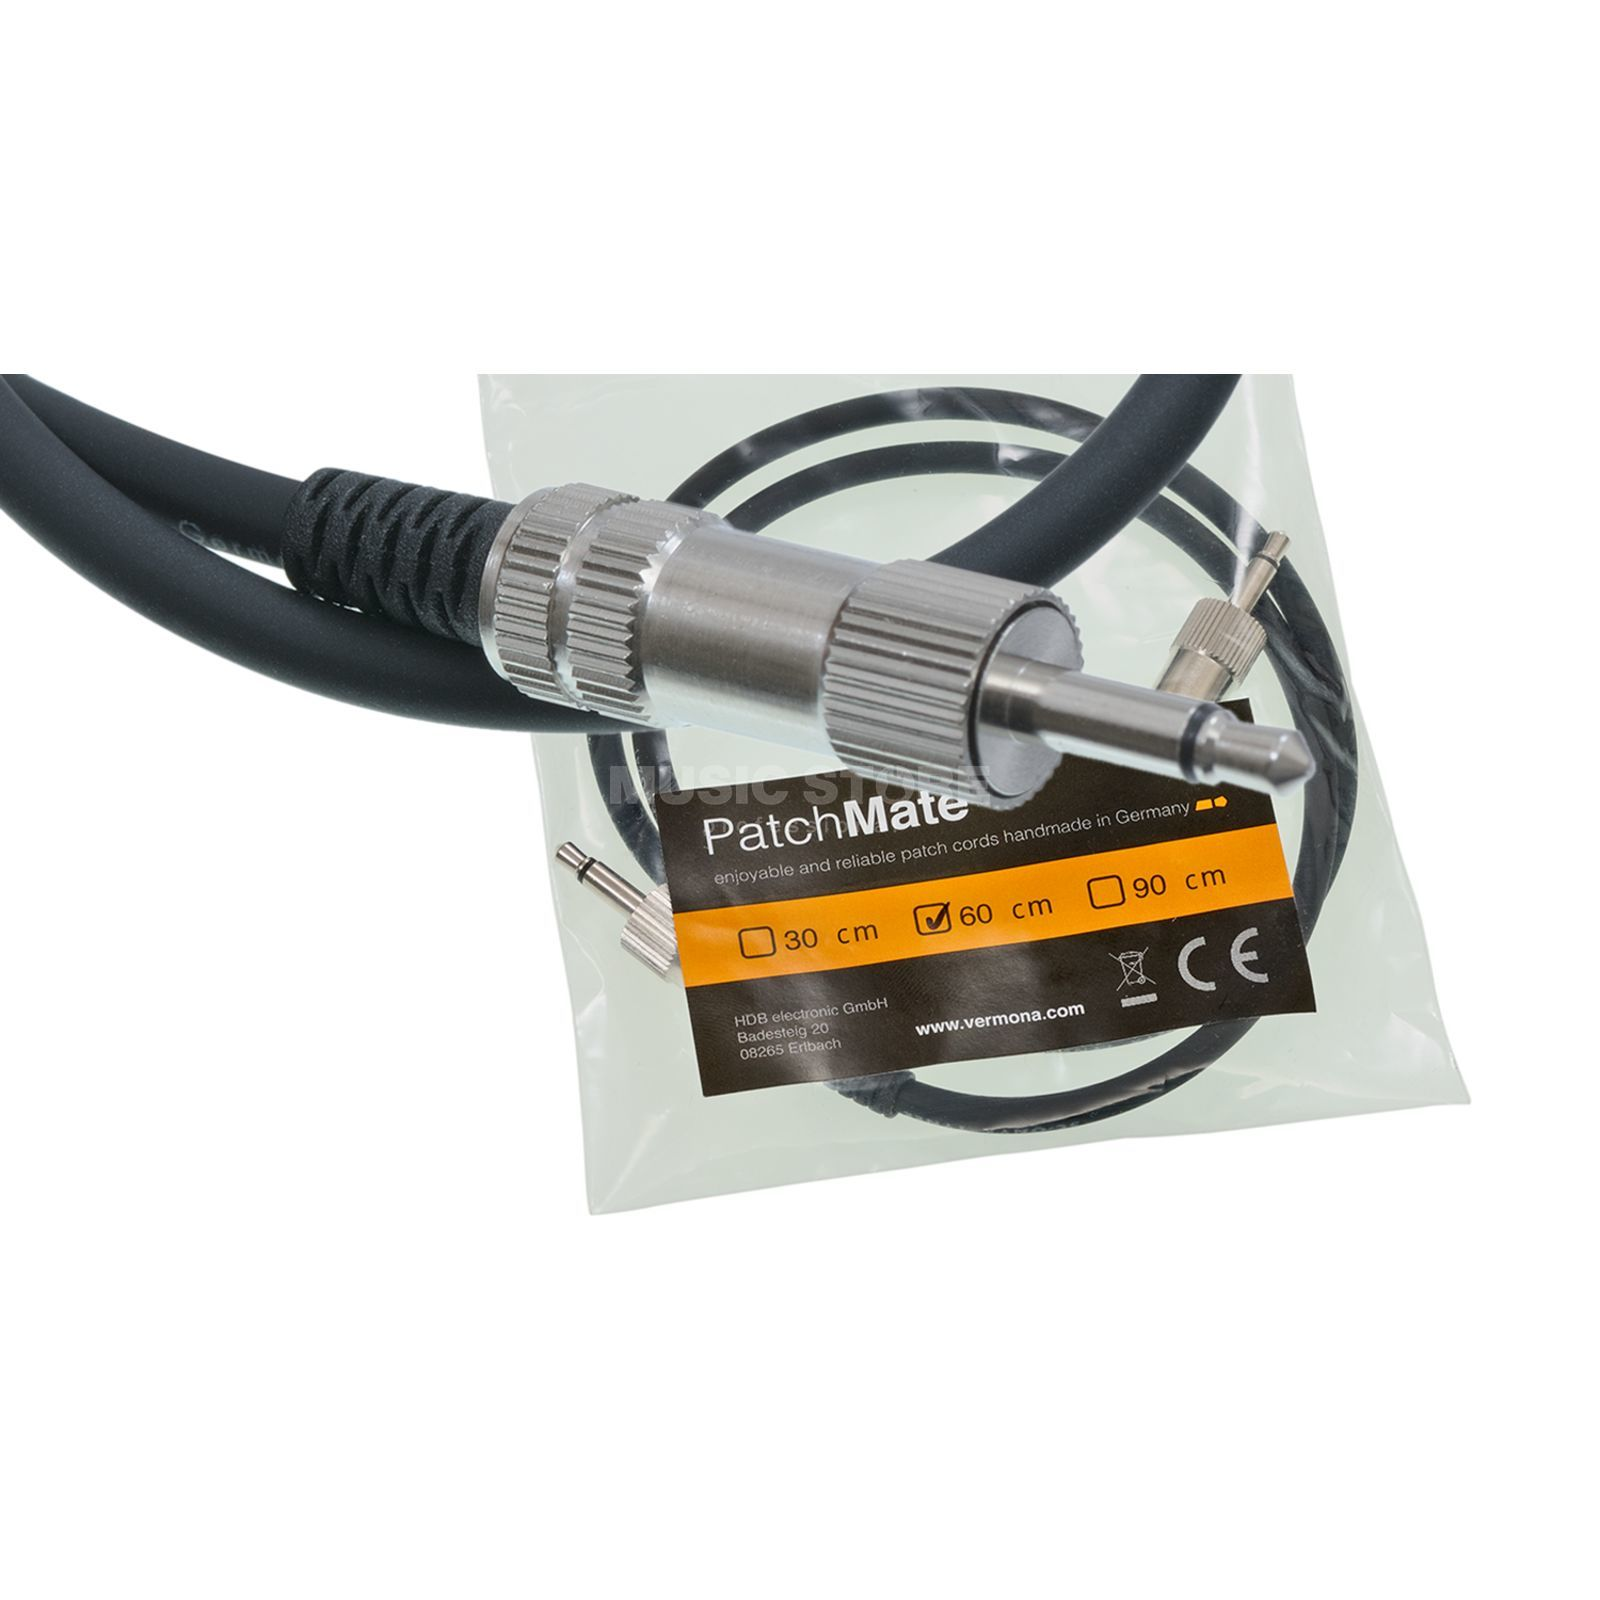 Vermona Modulear Patchmate Cable 60cm deluxe patchcable Produktbillede